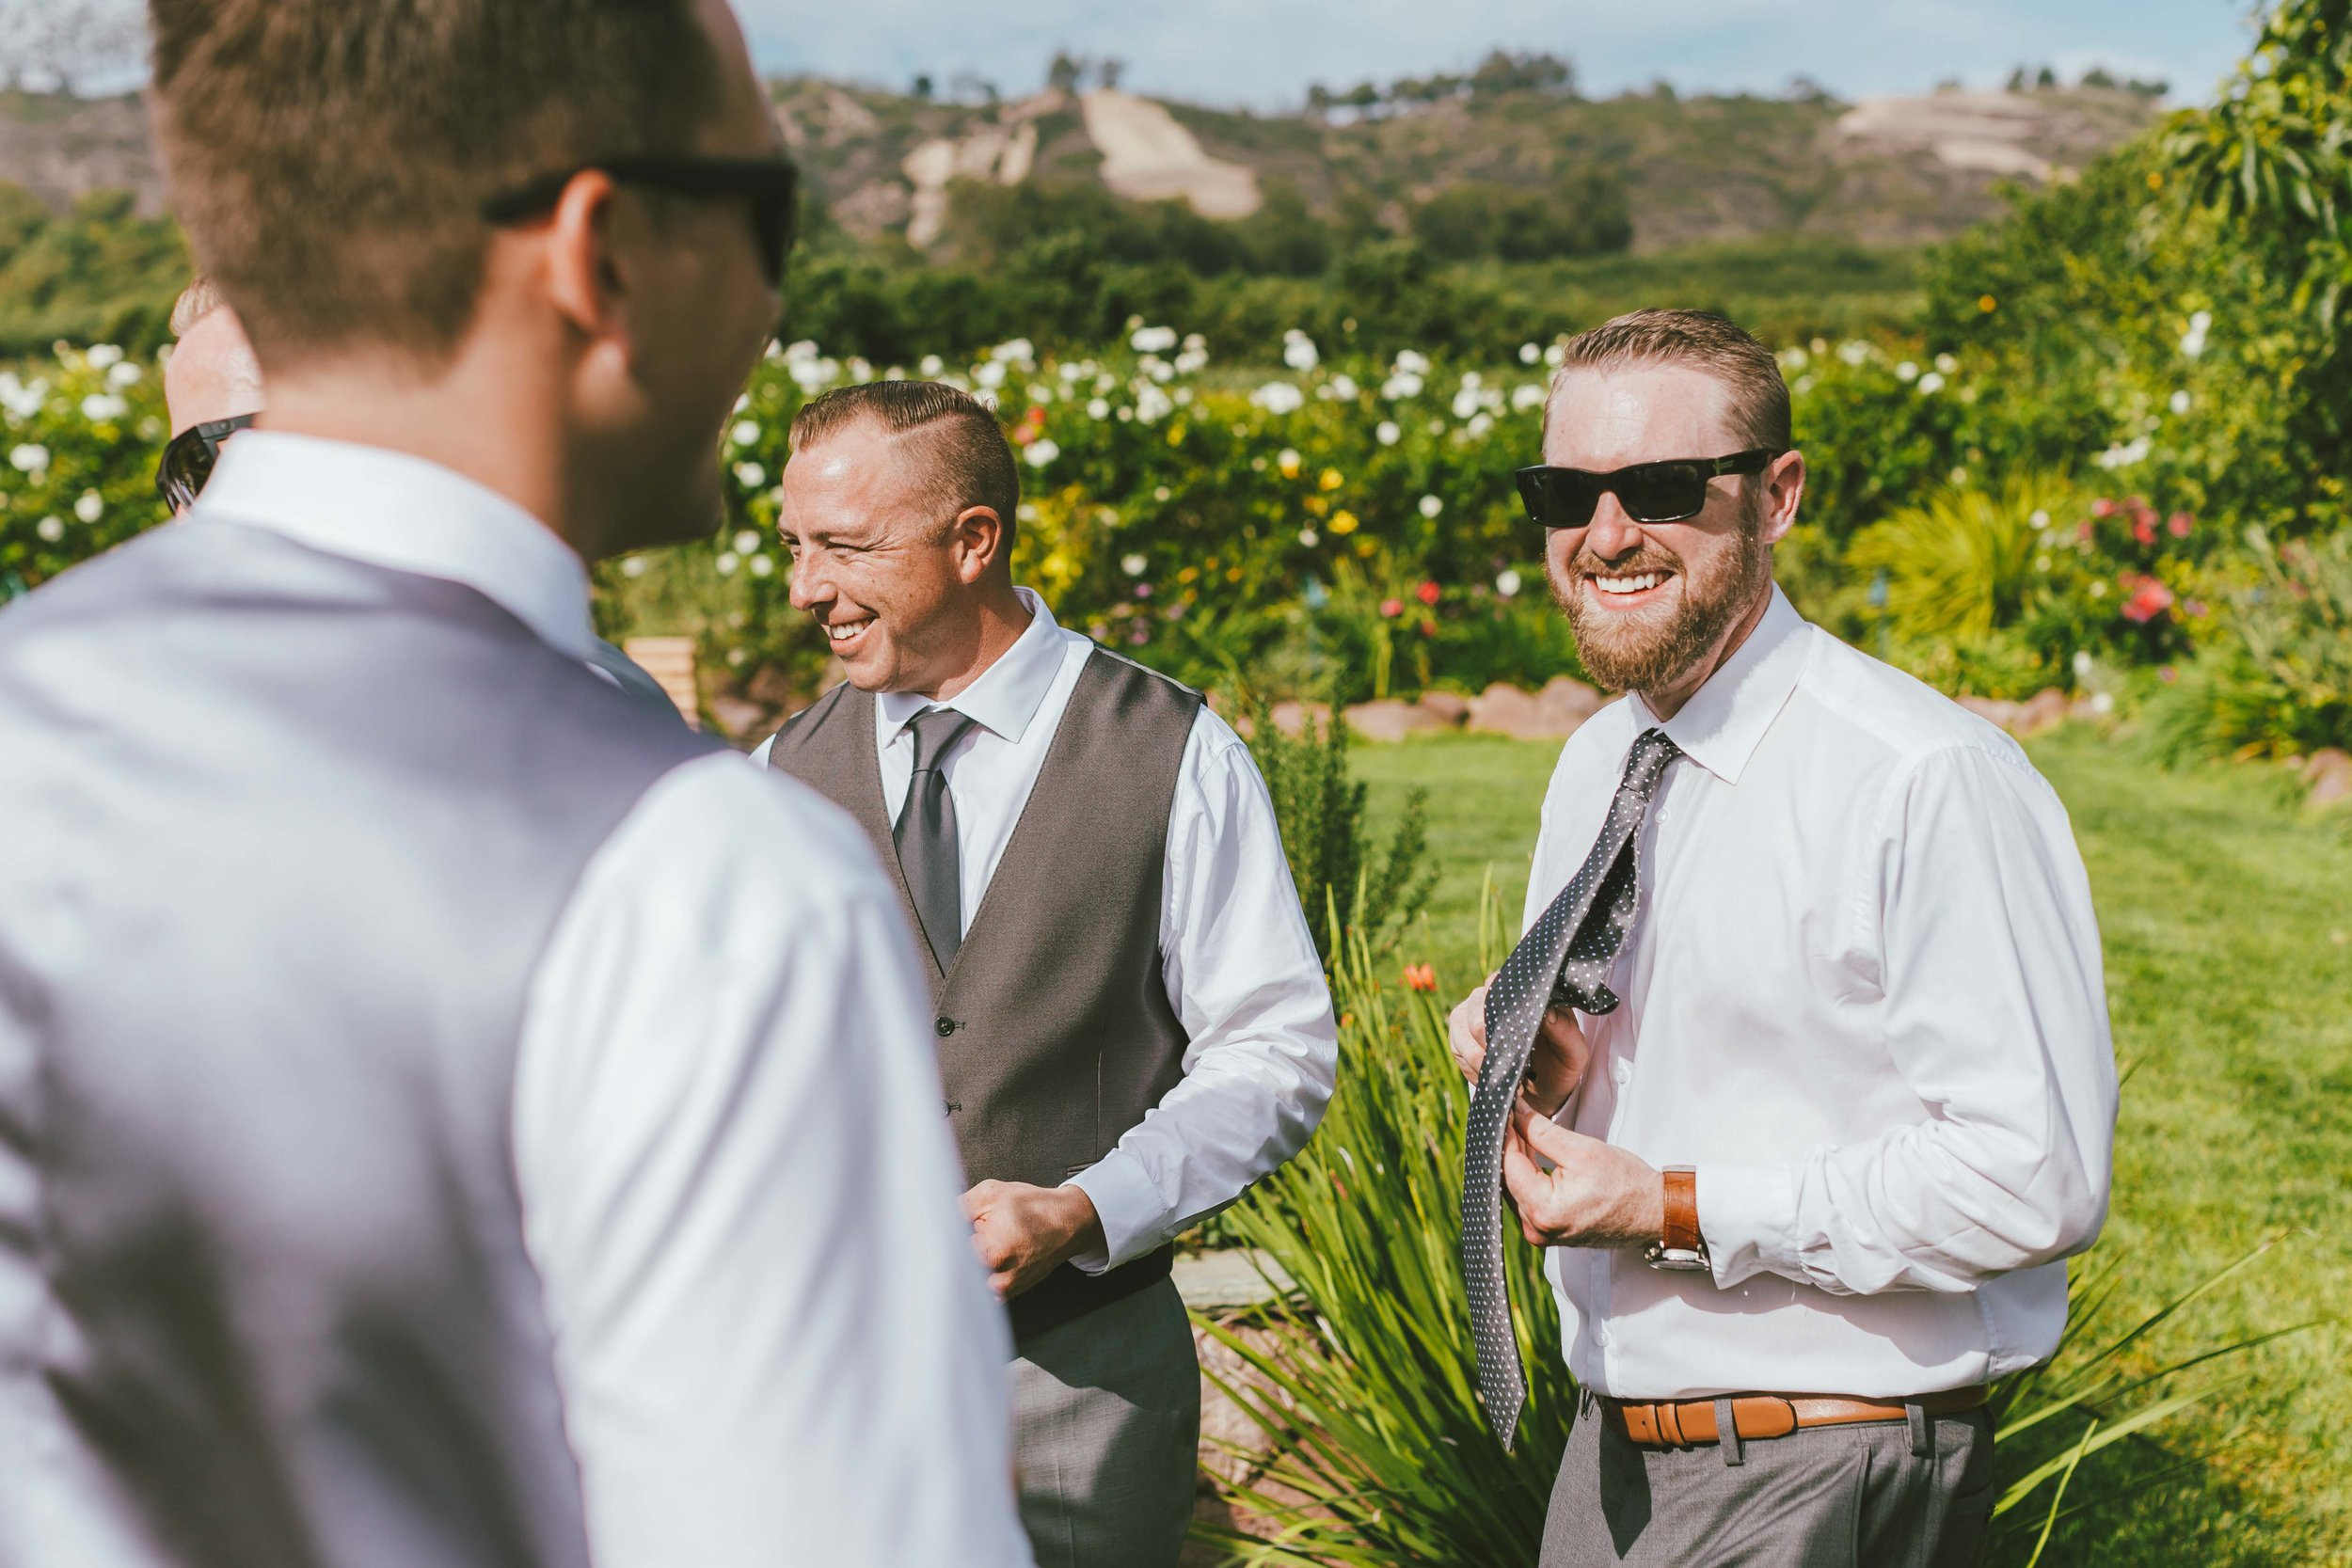 2015-Perkinson-Wedding-GerrysRanch-0064-web.jpg